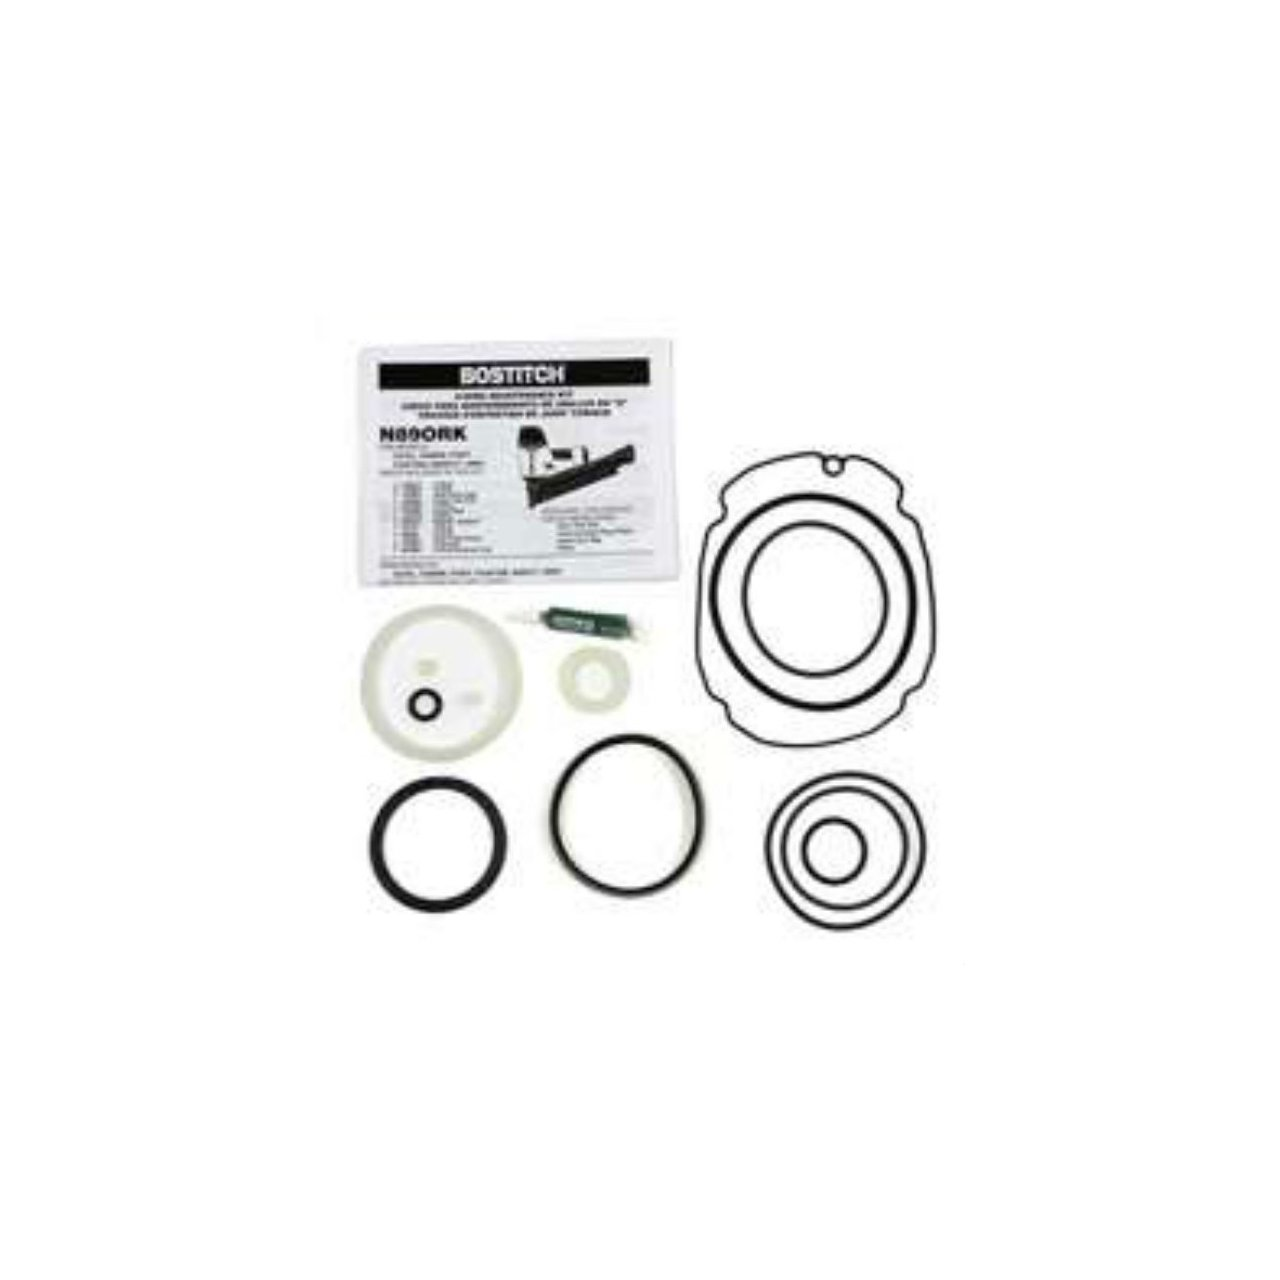 BOSTITCH N89ORK O-Ring Kit (Includes All O-Rings)